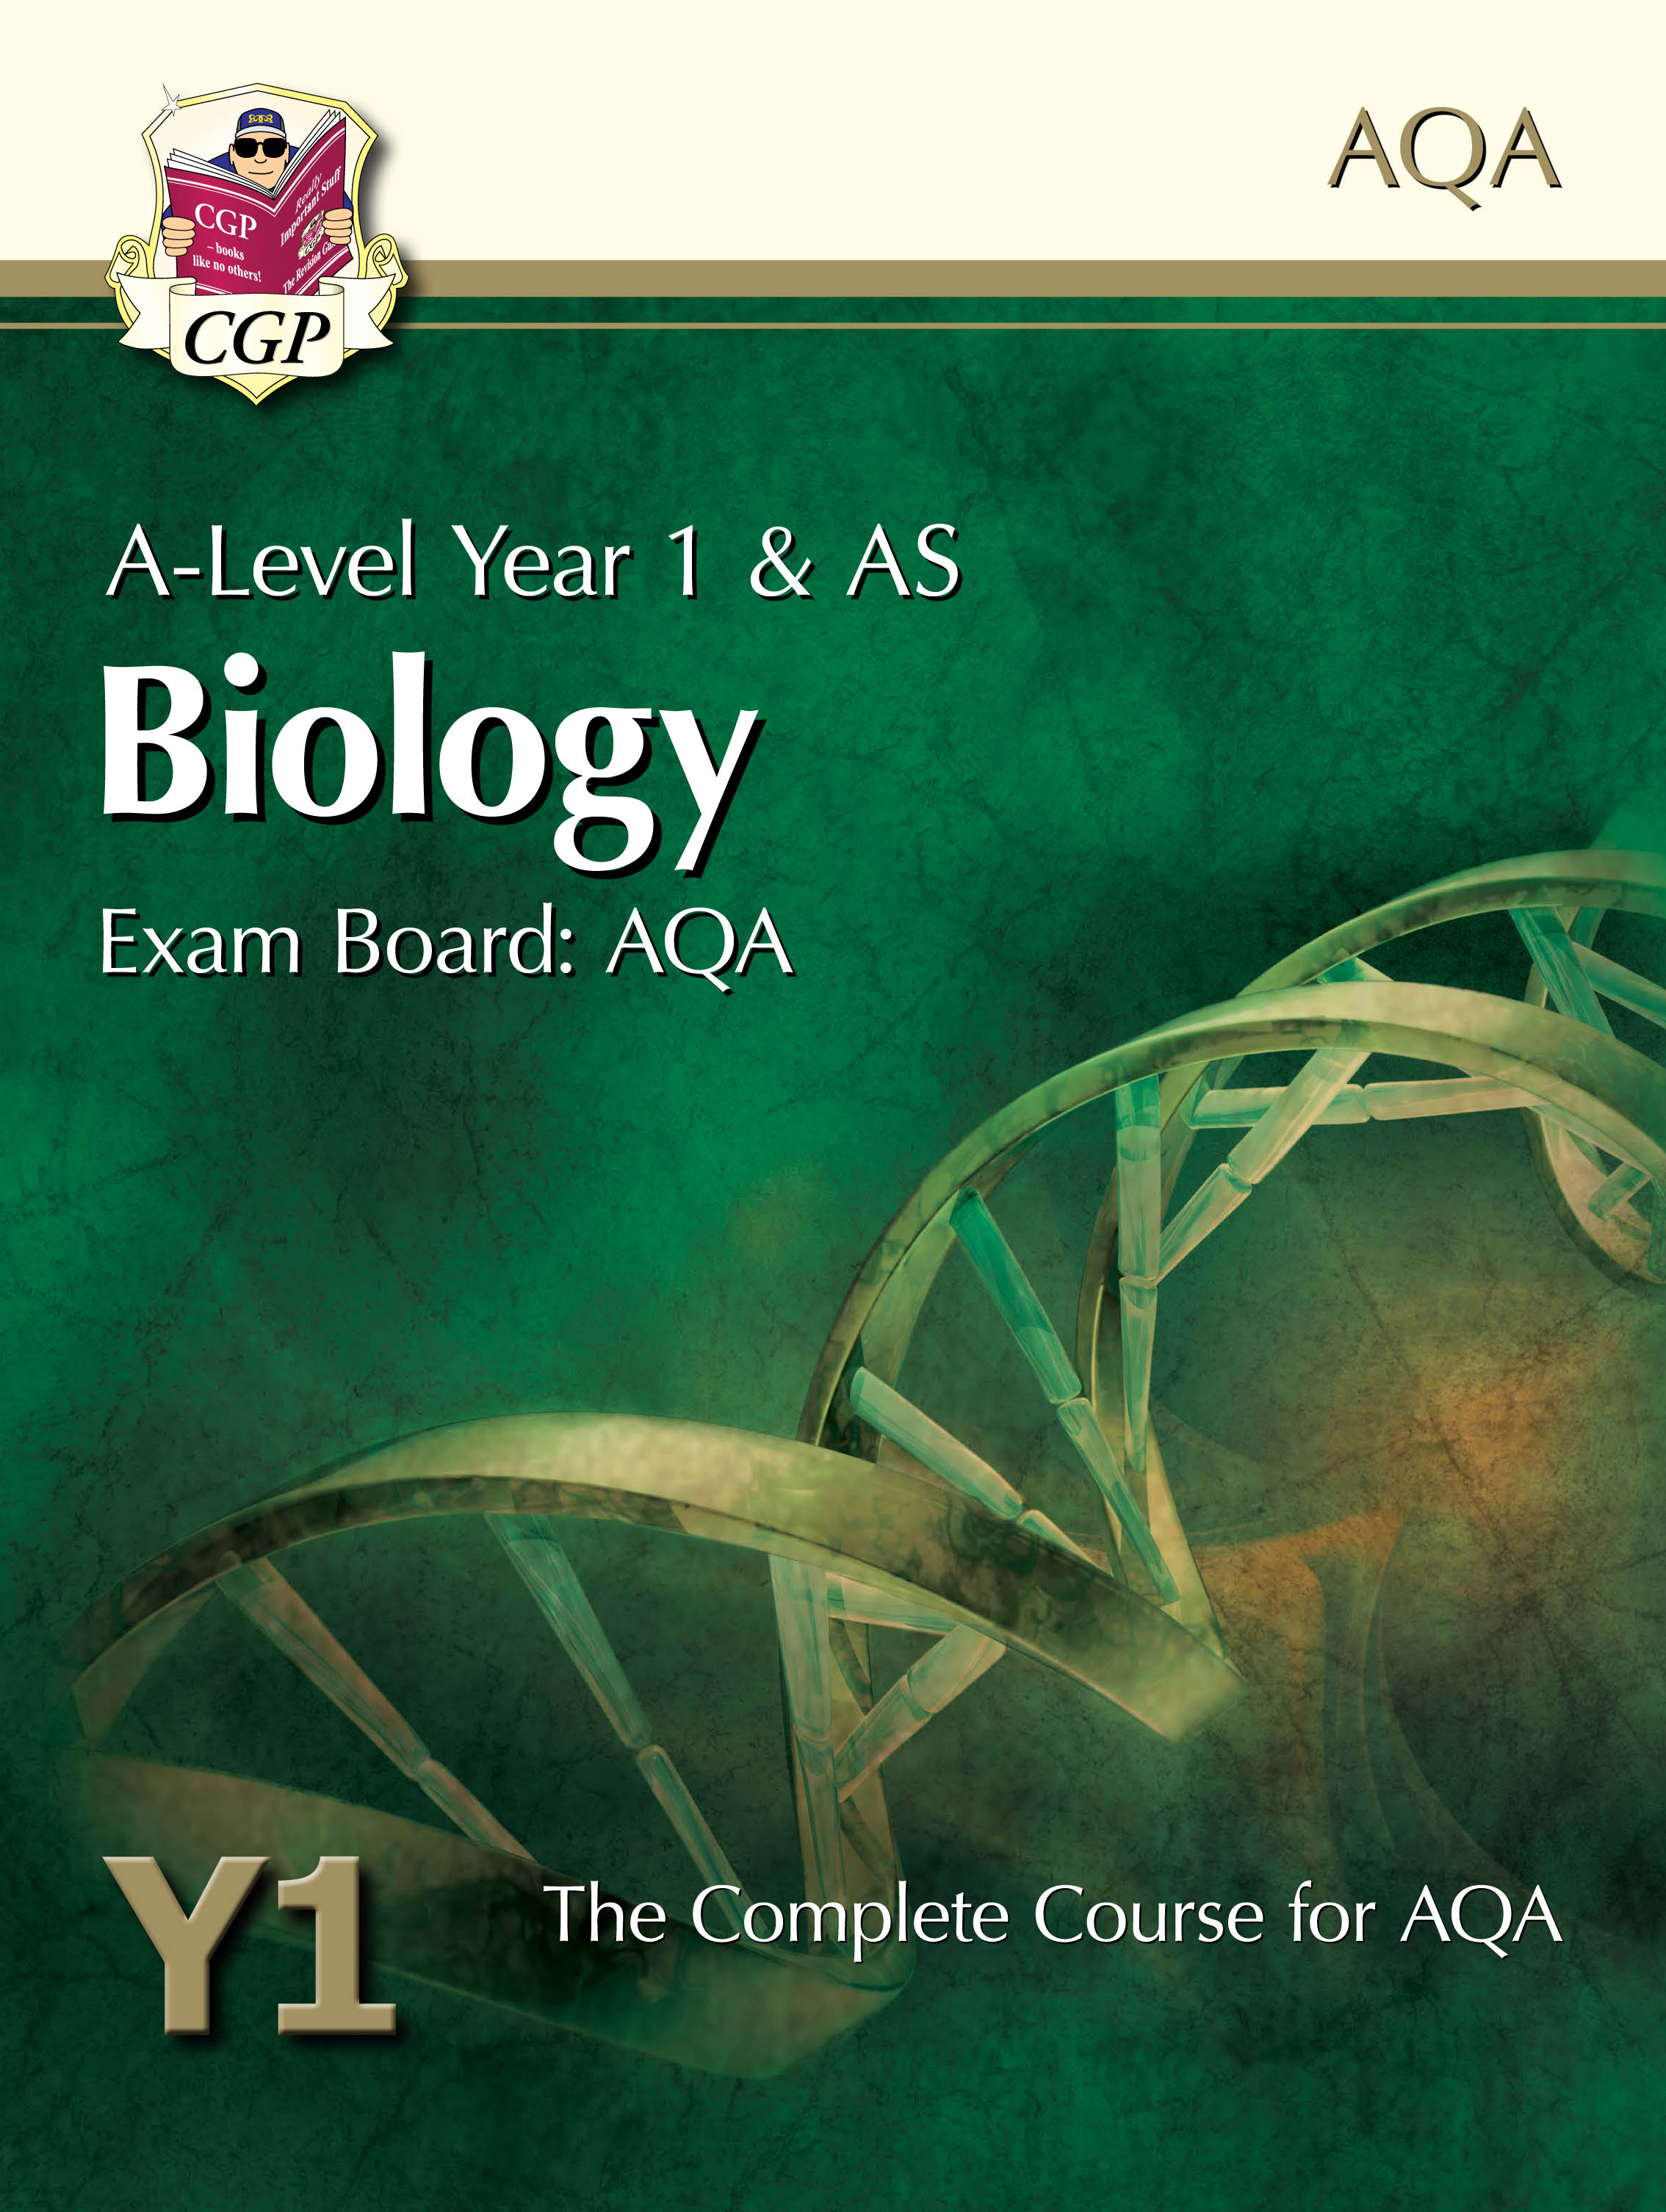 BATB52DK - A-Level Biology for AQA: Year 1 & AS Student Book